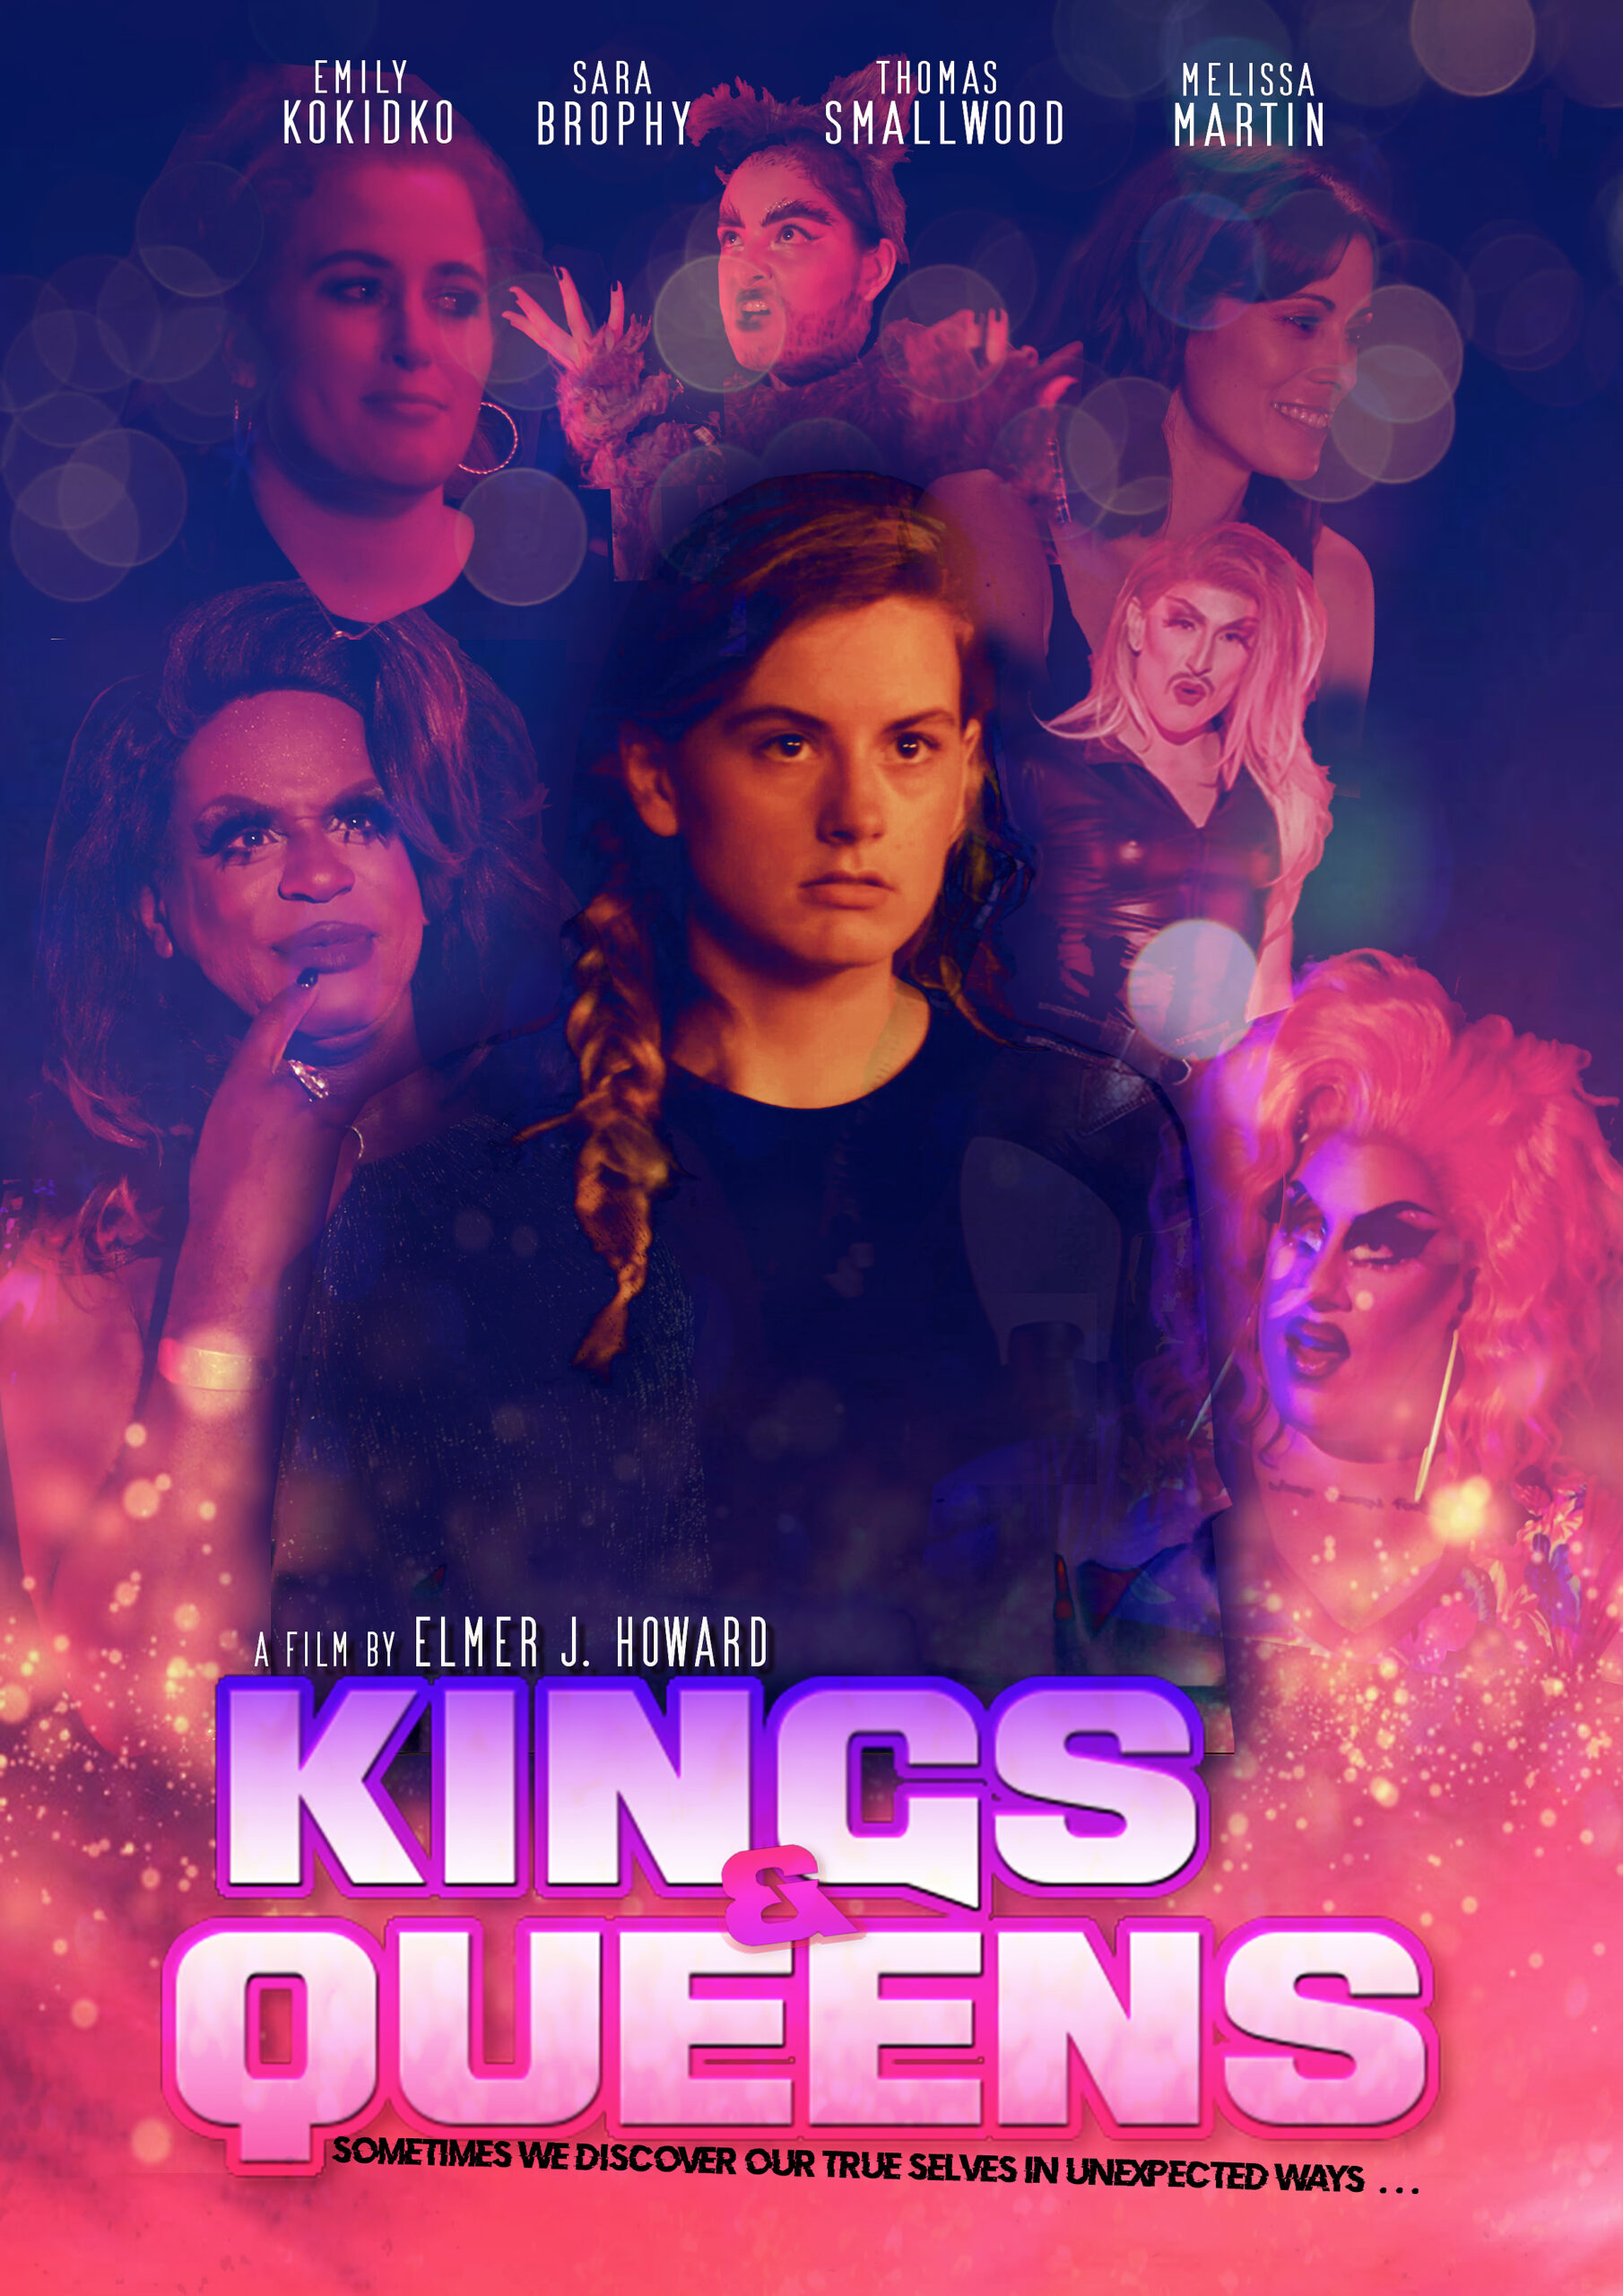 Kings & Queens Poster Woman facing camera with faces of others surrounding her